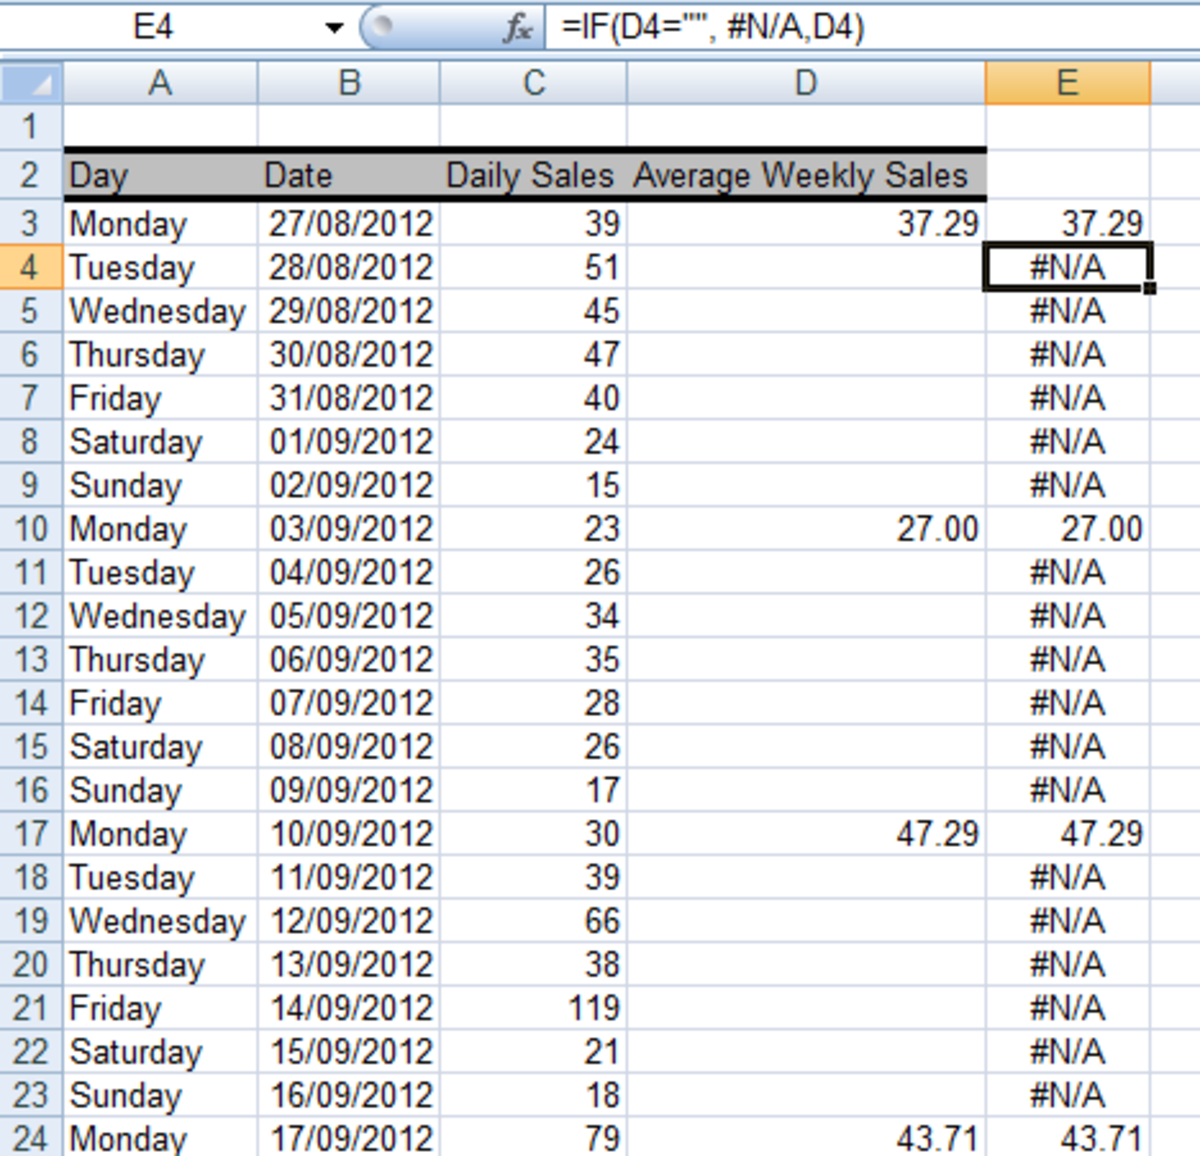 Ediblewildsus  Seductive How To Get Excel  And  To Ignore Empty Cells In A Chart Or  With Interesting Using The If Function In A Formula To Convert Empty Cells To Na With Delectable Calculating Correlation In Excel Also How To Unlock Excel File In Addition Sum Cells In Excel And Student Loan Repayment Excel Template As Well As Number Convert To Word In Excel  Additionally Remove Password From Excel  Workbook From Turbofuturecom With Ediblewildsus  Interesting How To Get Excel  And  To Ignore Empty Cells In A Chart Or  With Delectable Using The If Function In A Formula To Convert Empty Cells To Na And Seductive Calculating Correlation In Excel Also How To Unlock Excel File In Addition Sum Cells In Excel From Turbofuturecom